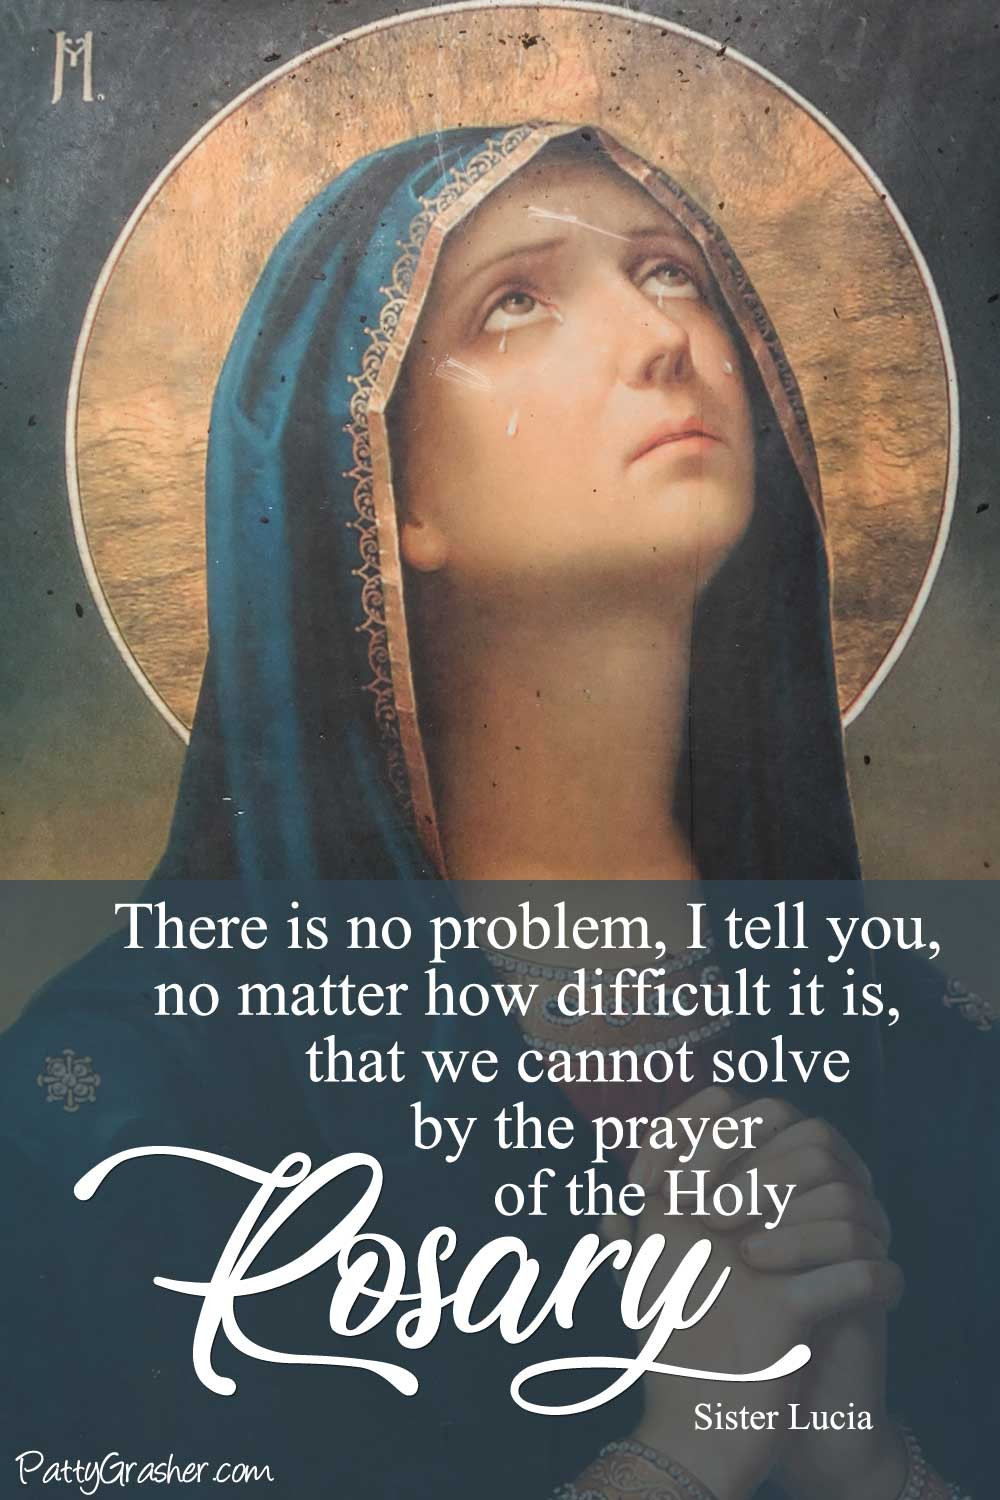 Image of the Sorrowful Mother